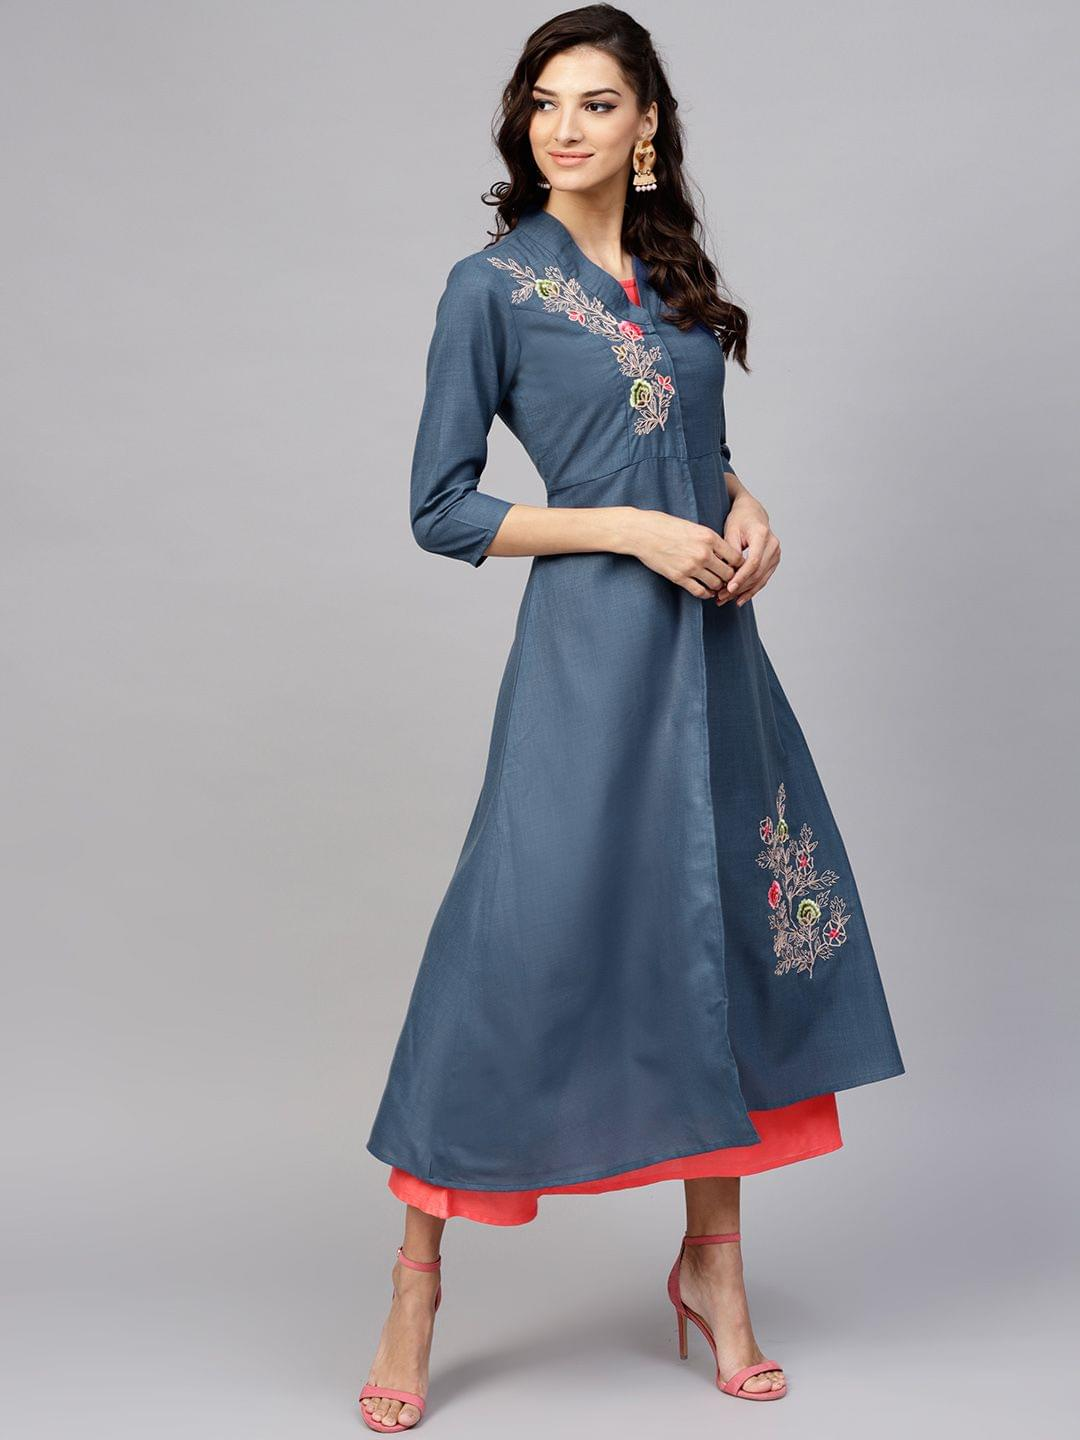 Yufta Women Navy Blue & Coral Pink Solid A-Line Dress with Ethnic Jacket